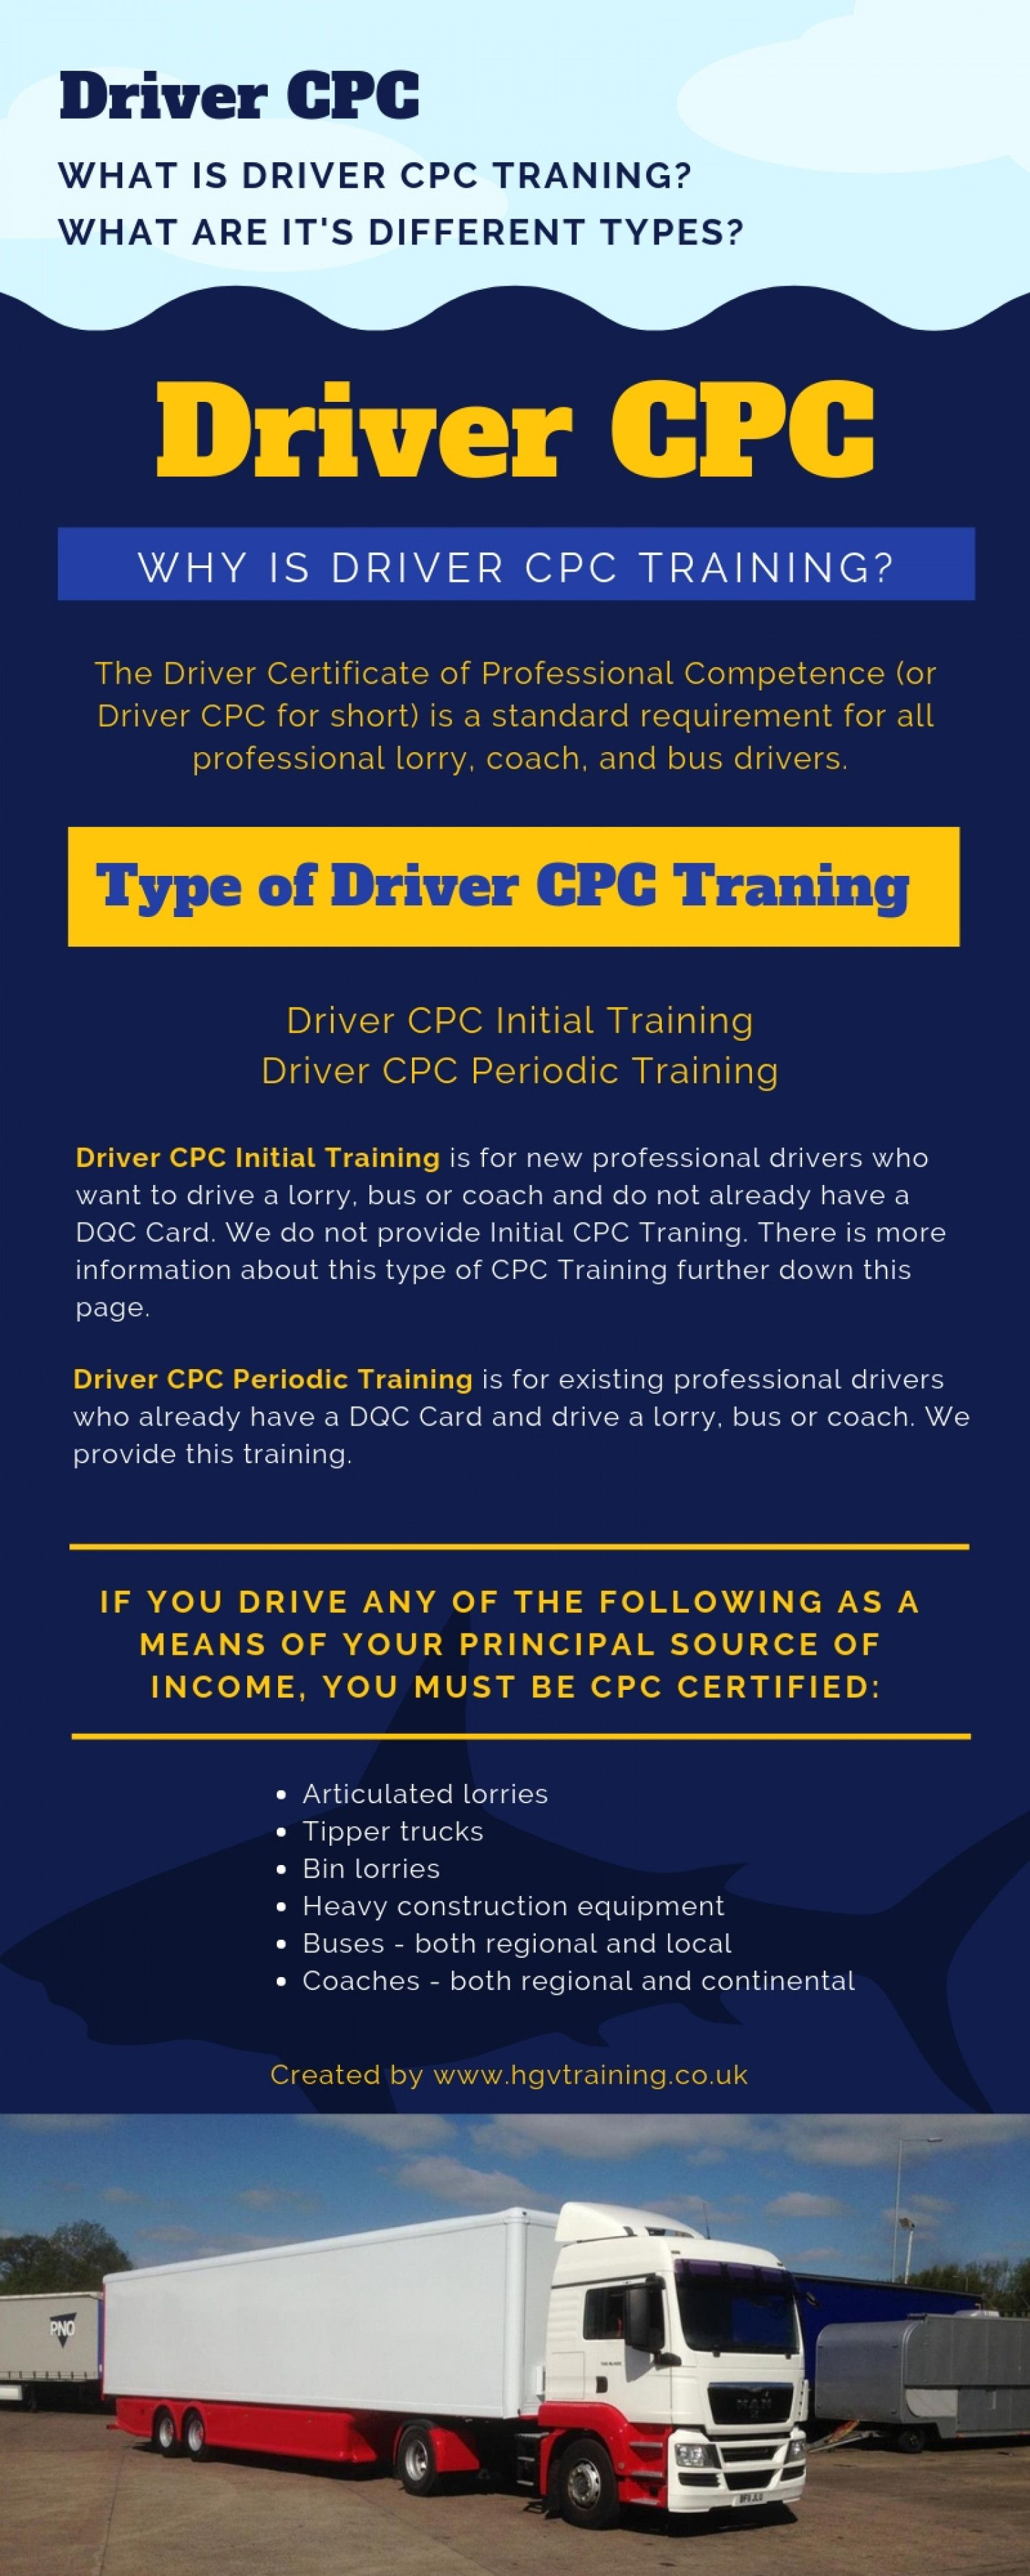 Here You Can Find In Detail About Driver Cpc Training Course And